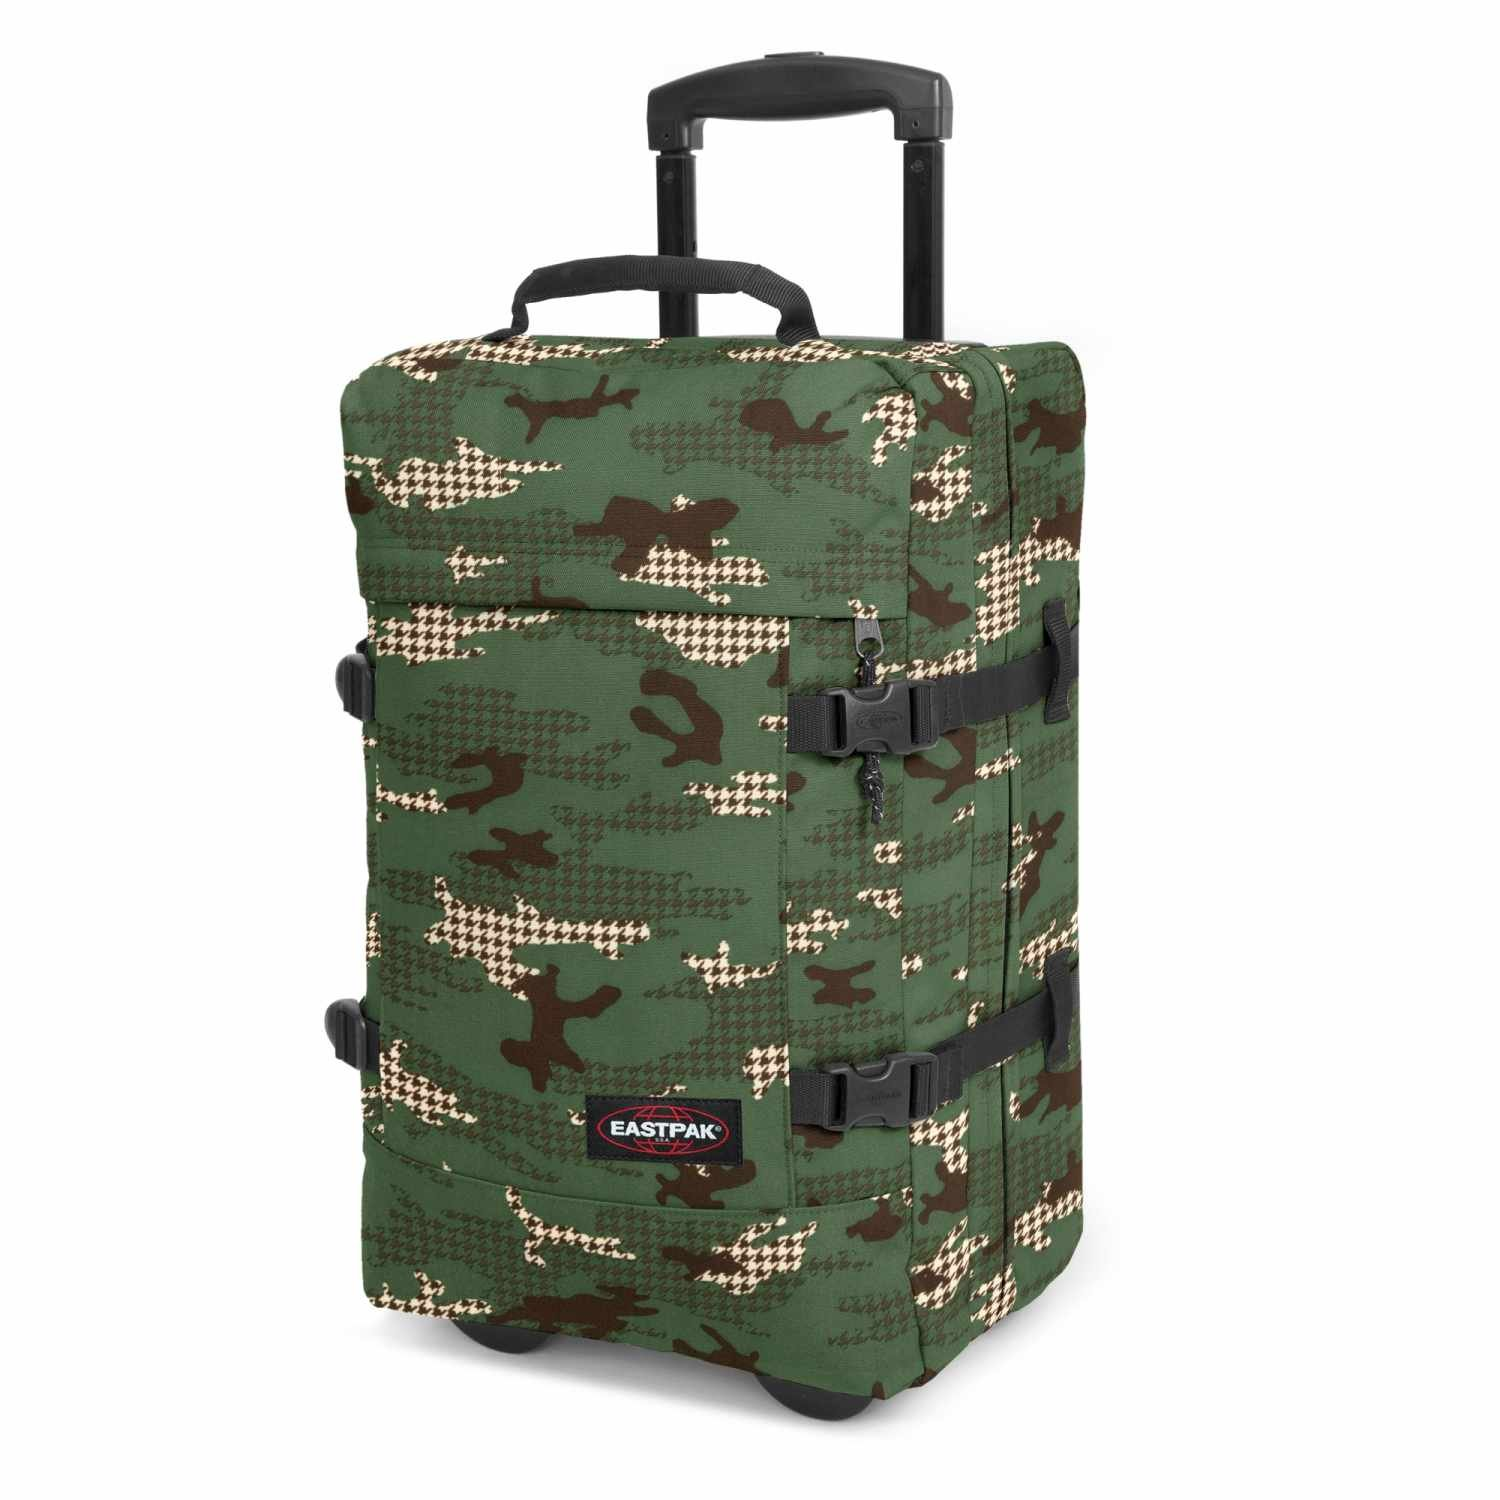 Strapverz Eastpak Bagages Camtooth Cabine 42 Cm Bagage OwpvqwU